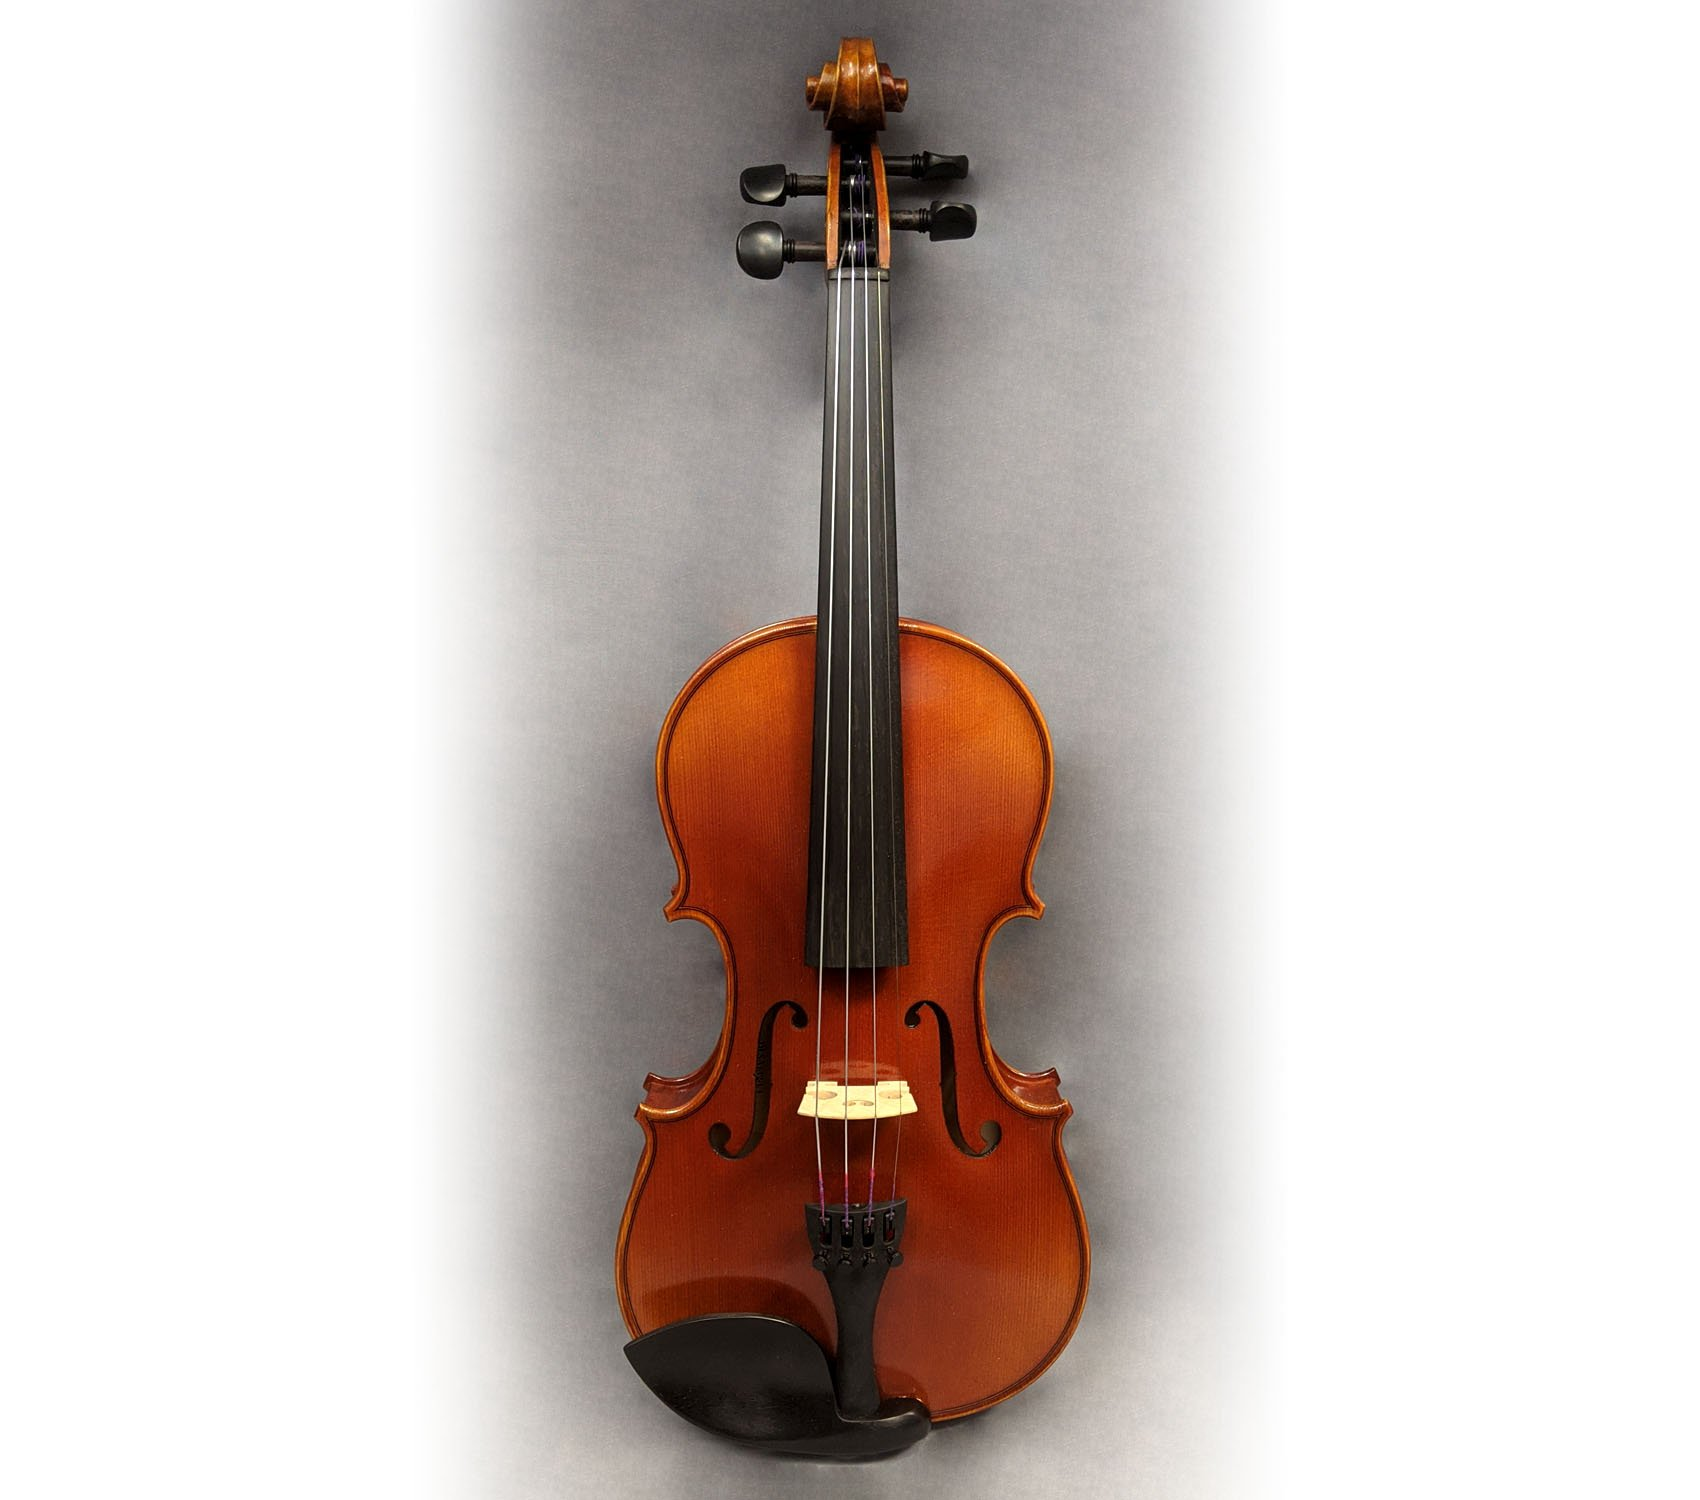 Devon Strings DLS-V612 4/4 Violin Outfit